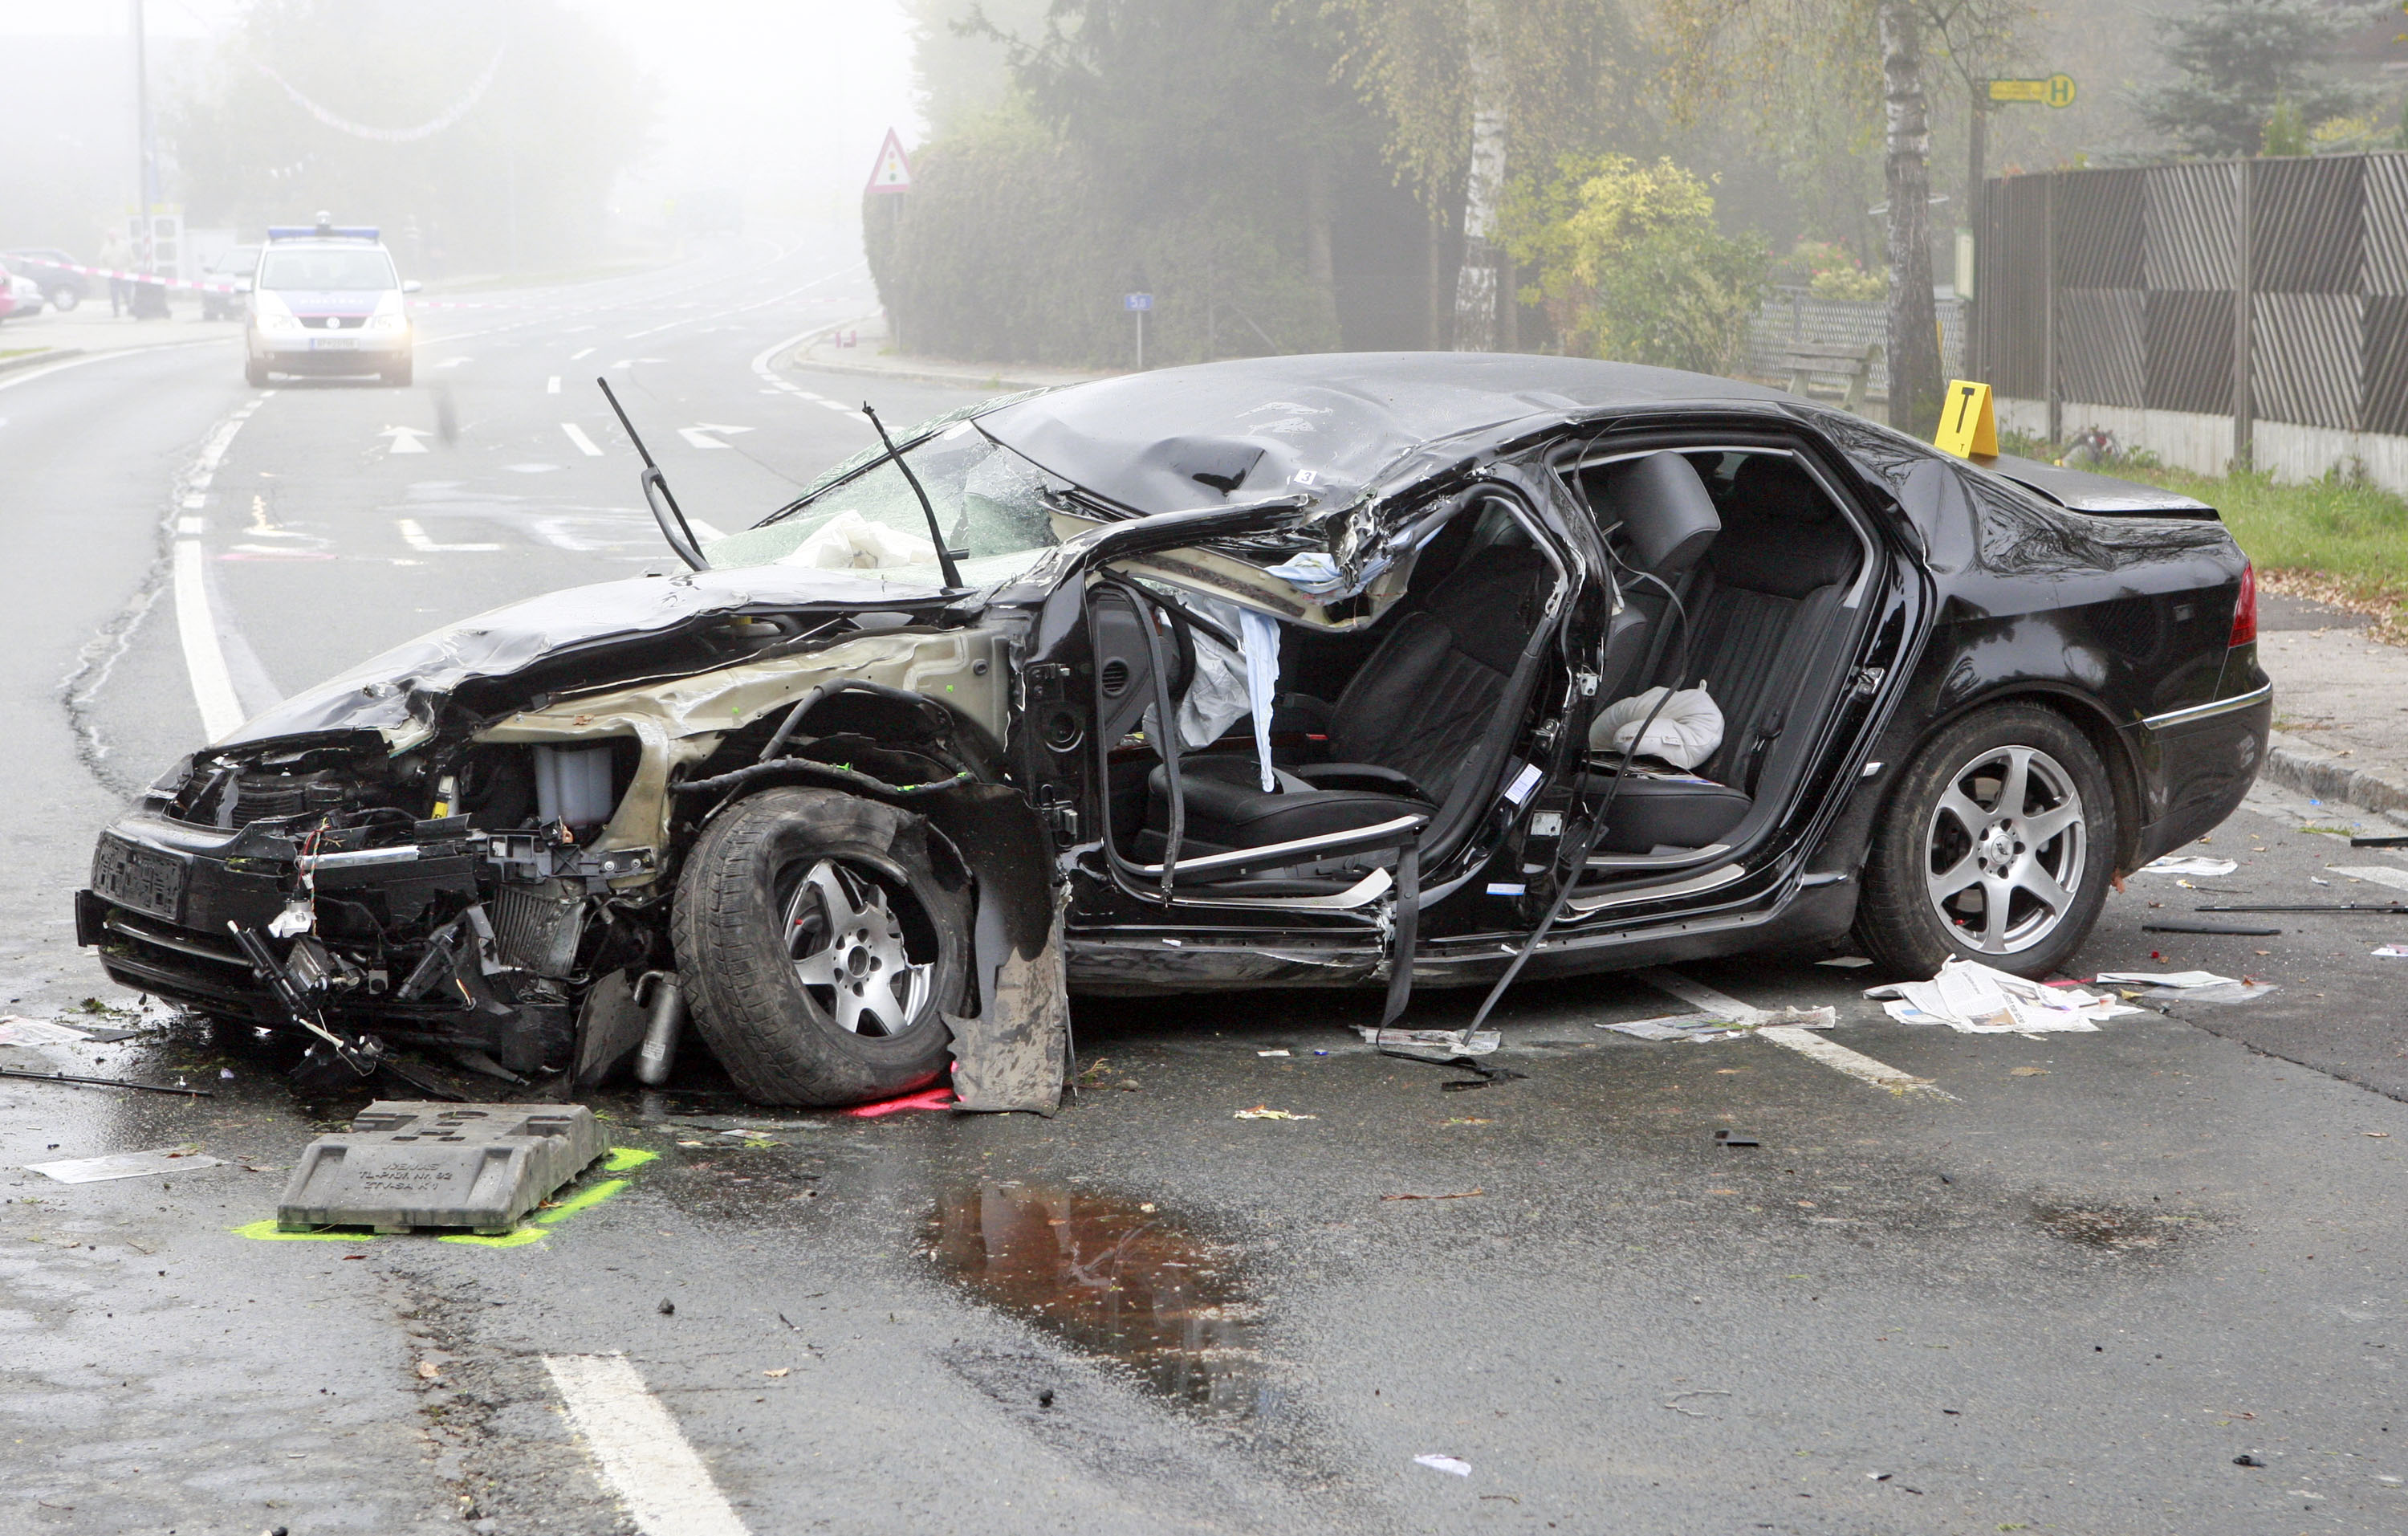 LAMBICHL, AUSTRIA - OCTOBER 11:  The wreckage of the car driven by Austrian far-right leader Joerg Haider in which he died during a road traffic accident early October 11, 2008 in Lambichl, south of Klagenfurt, Austria. 58-year-old Haider, was at the wheel as his vehicle as it came off the road after over taking another near Klagenfurt.  (Photo by Gert Eggenberger/Getty Images)